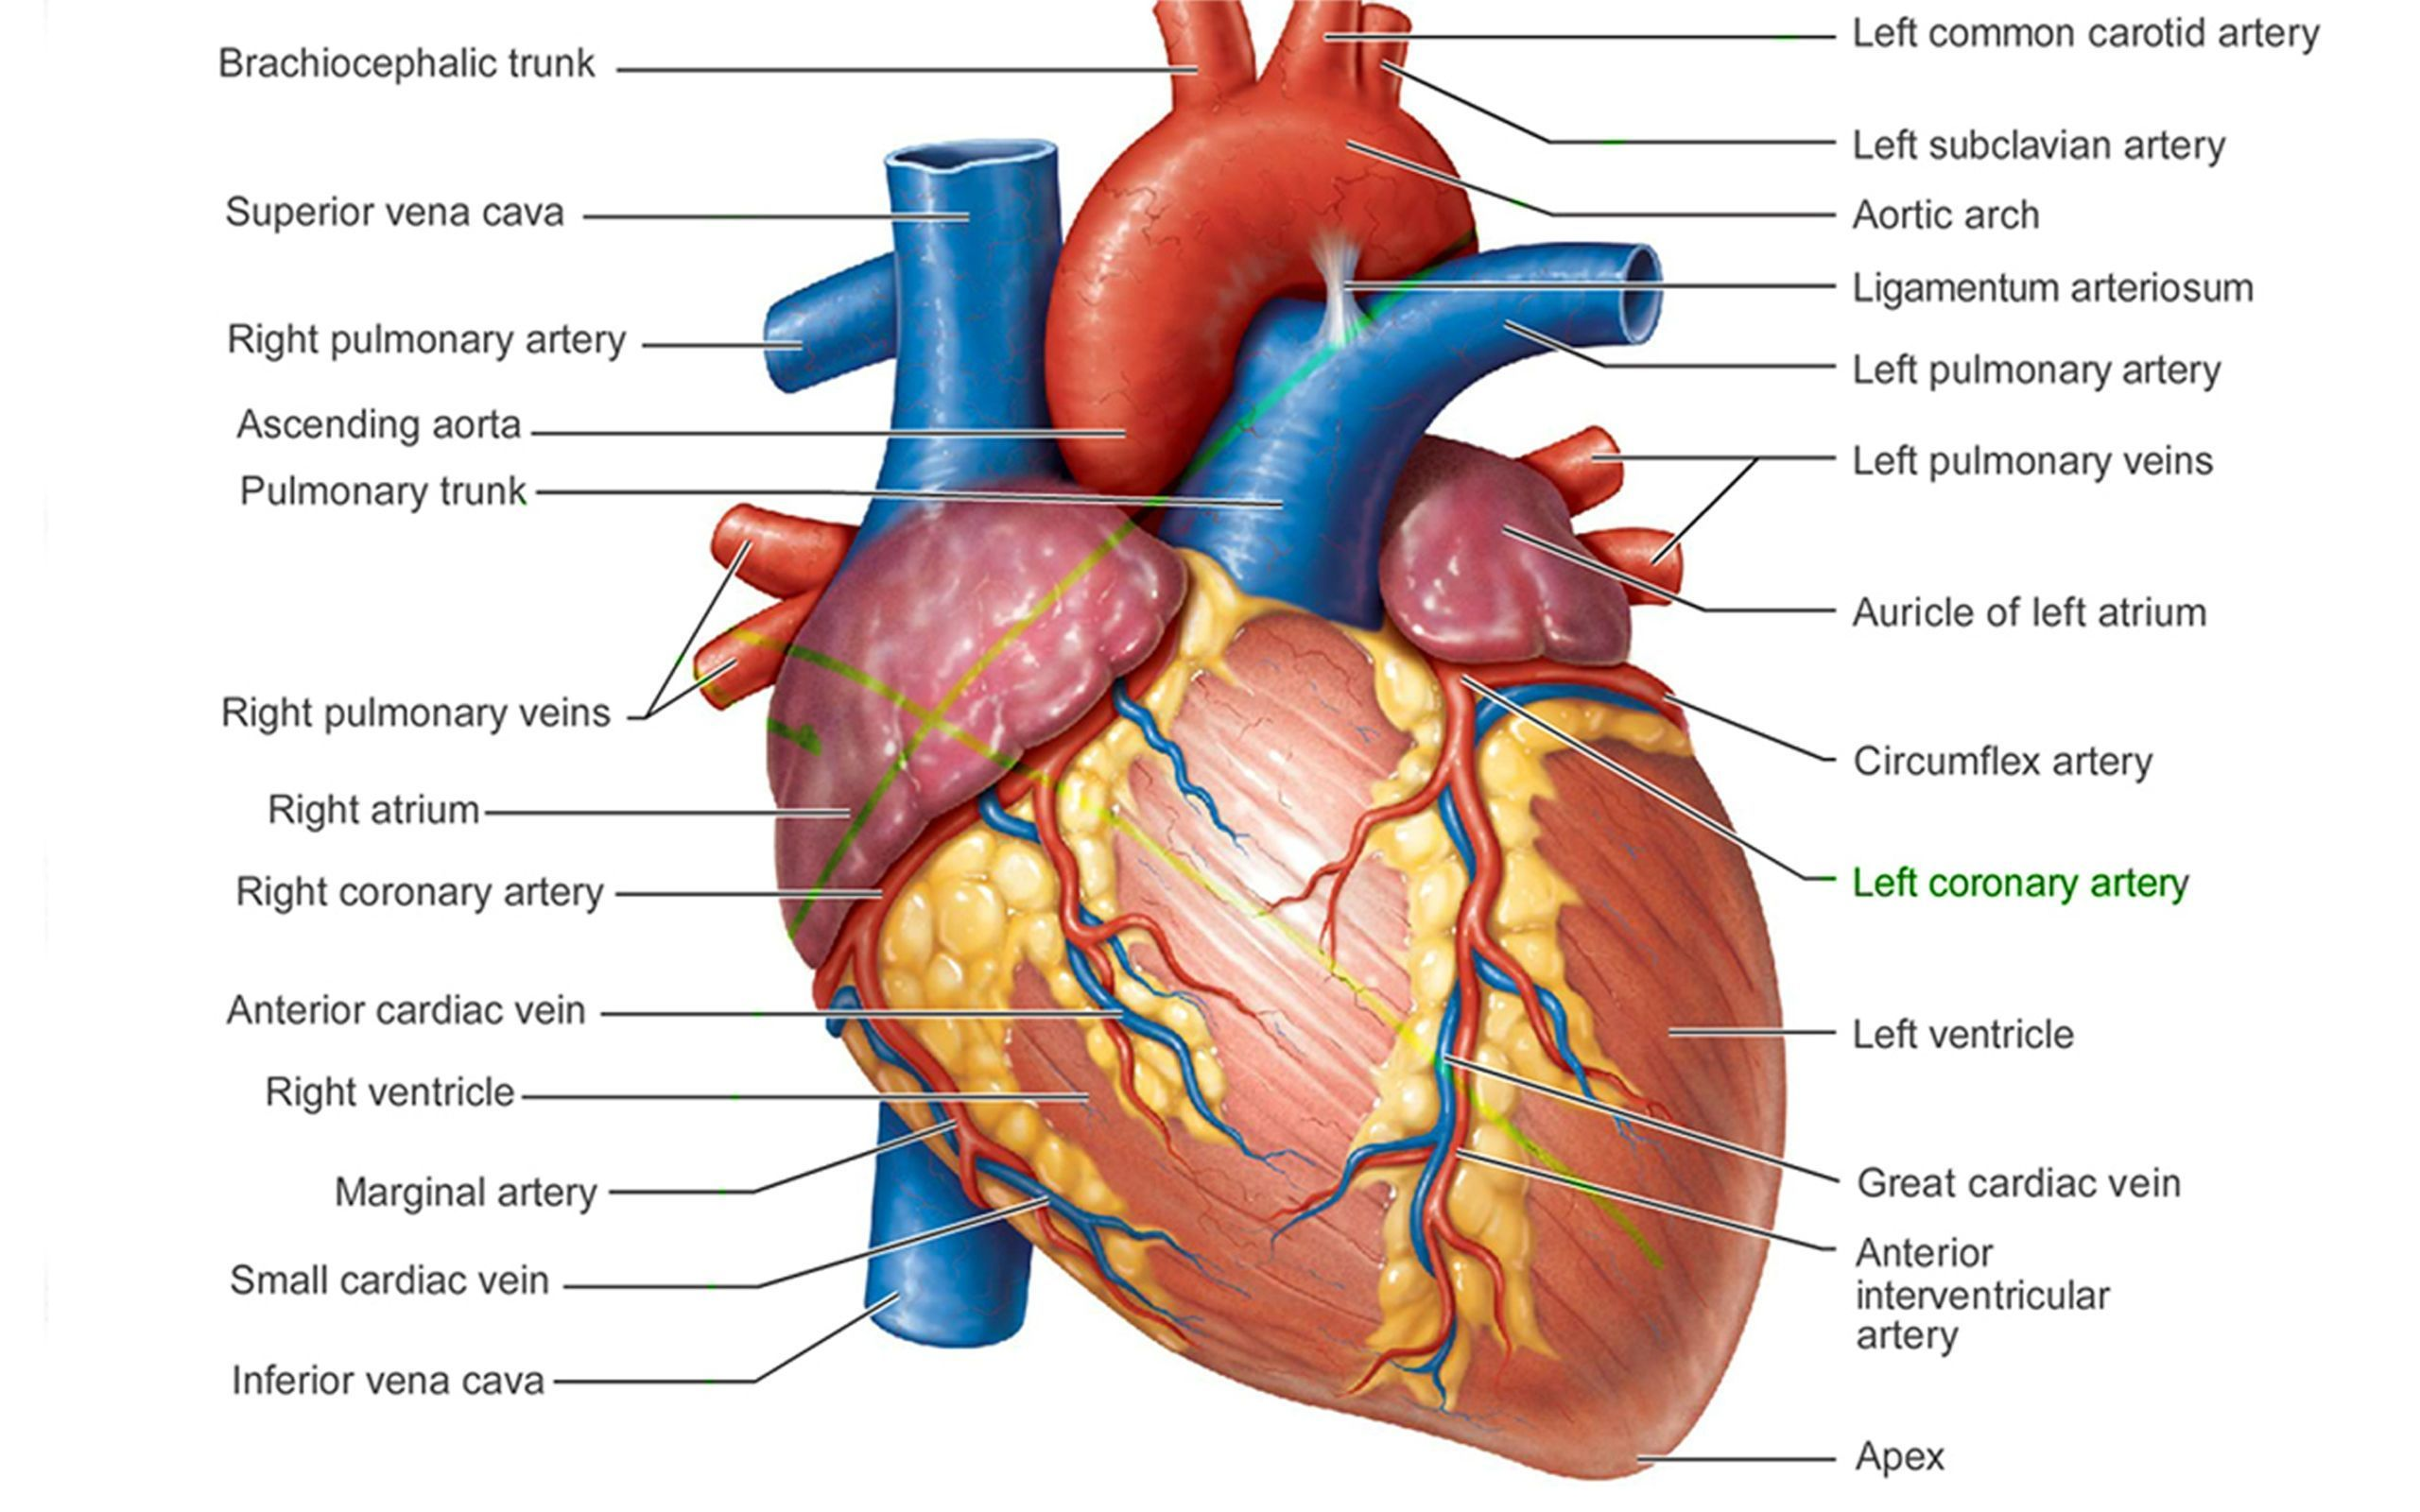 human vascular anatomy diagram visual studio uml class of heart pictures pinterest the